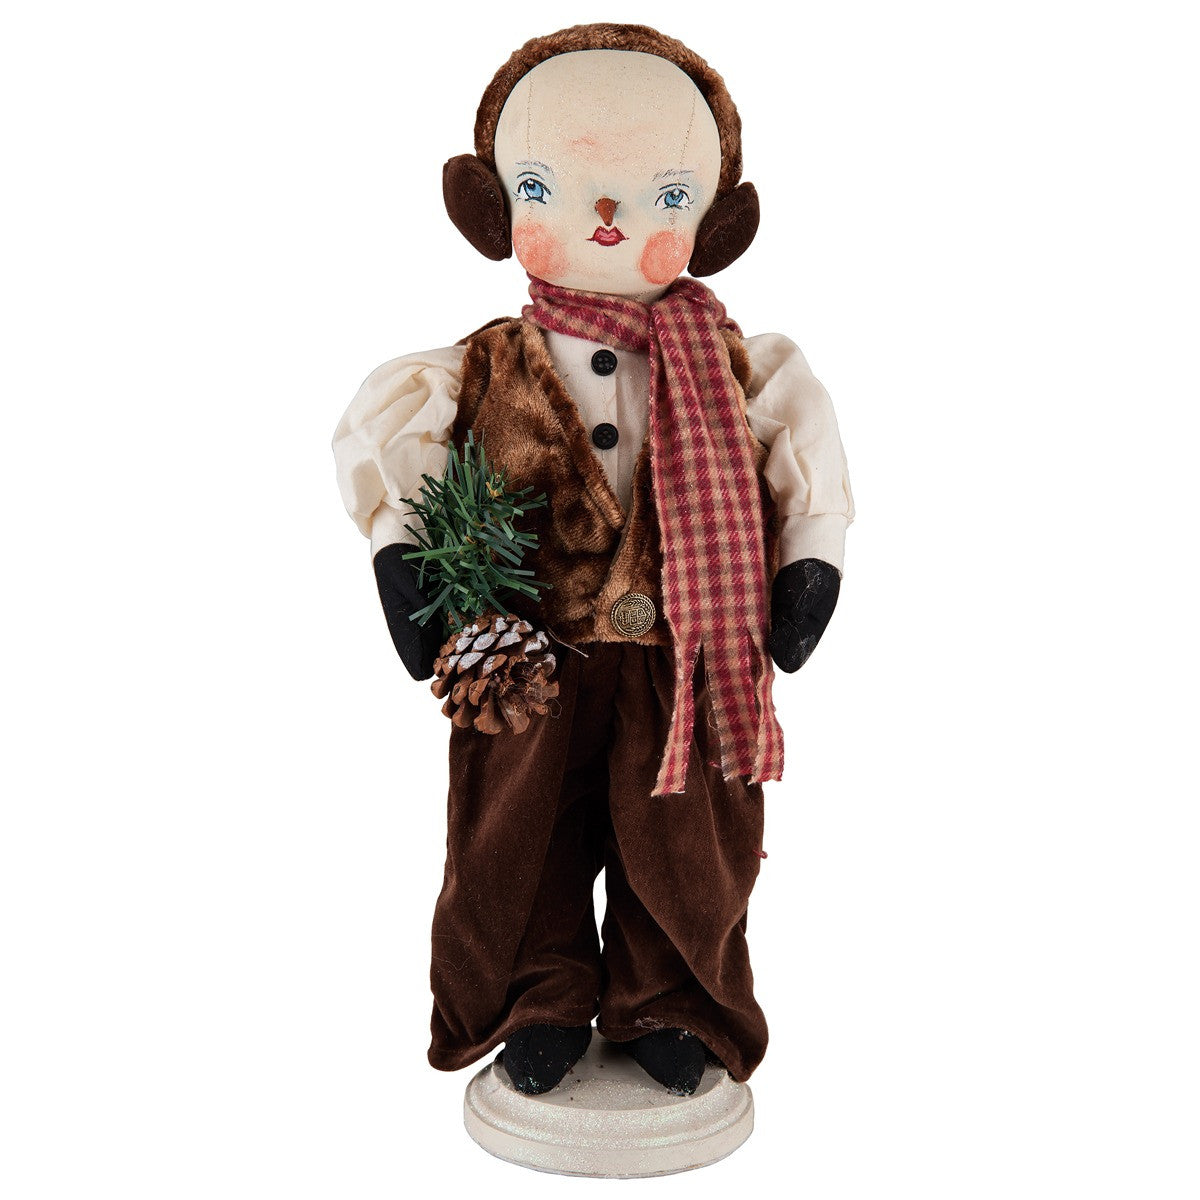 Forrest Standing Snowman - Joe Spencer Cloth Christmas Dolls